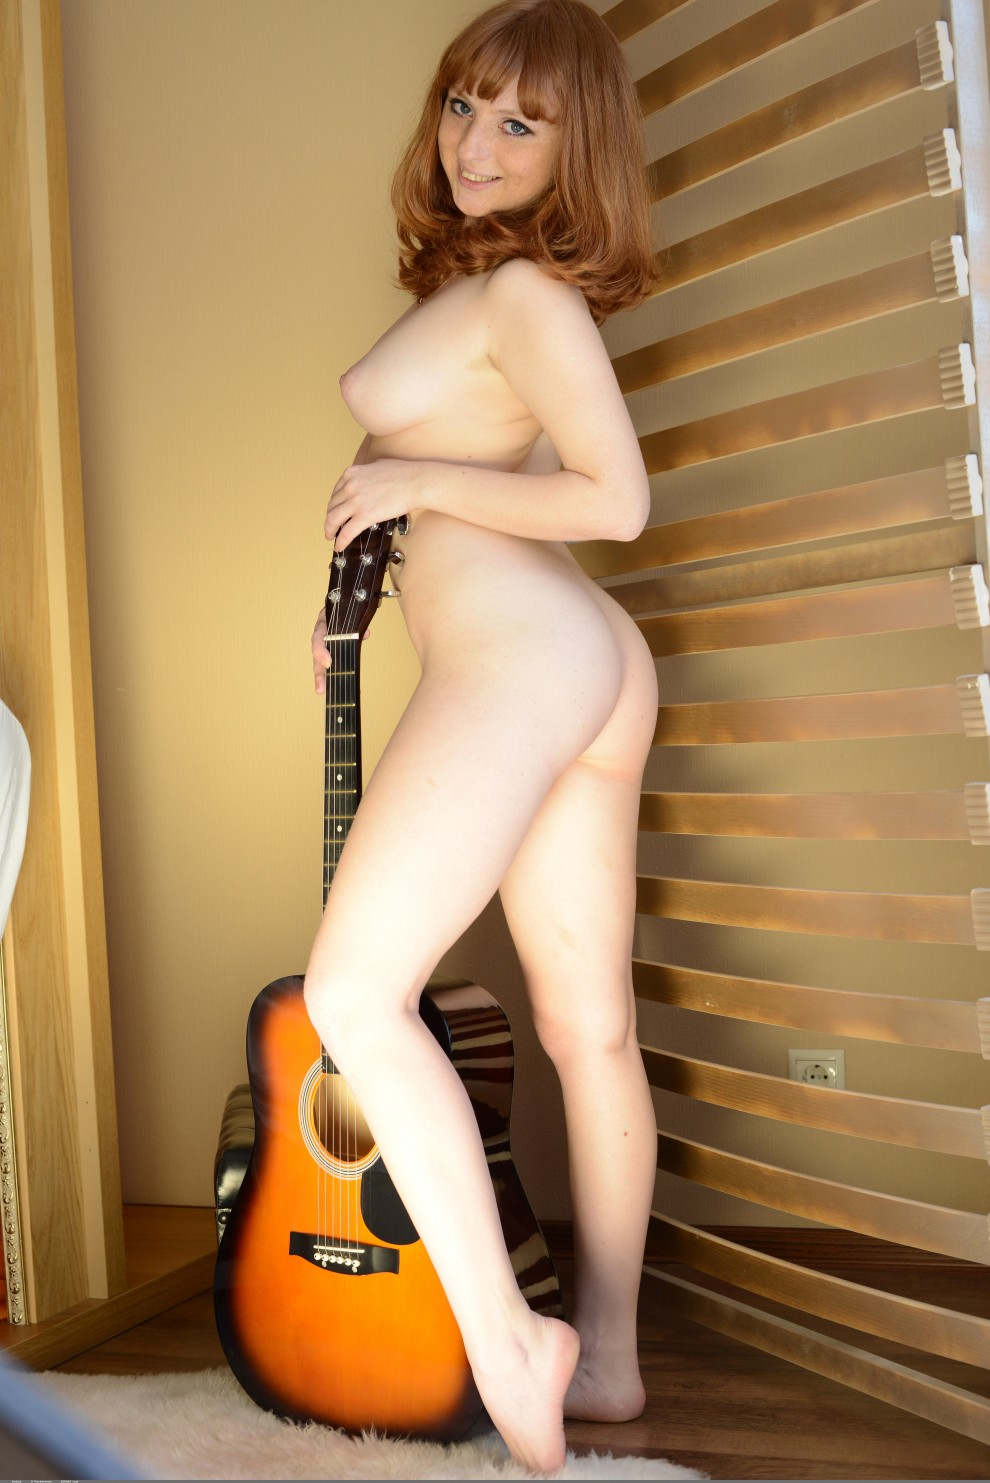 Who do you fancy more? Her Ass or Guitar?